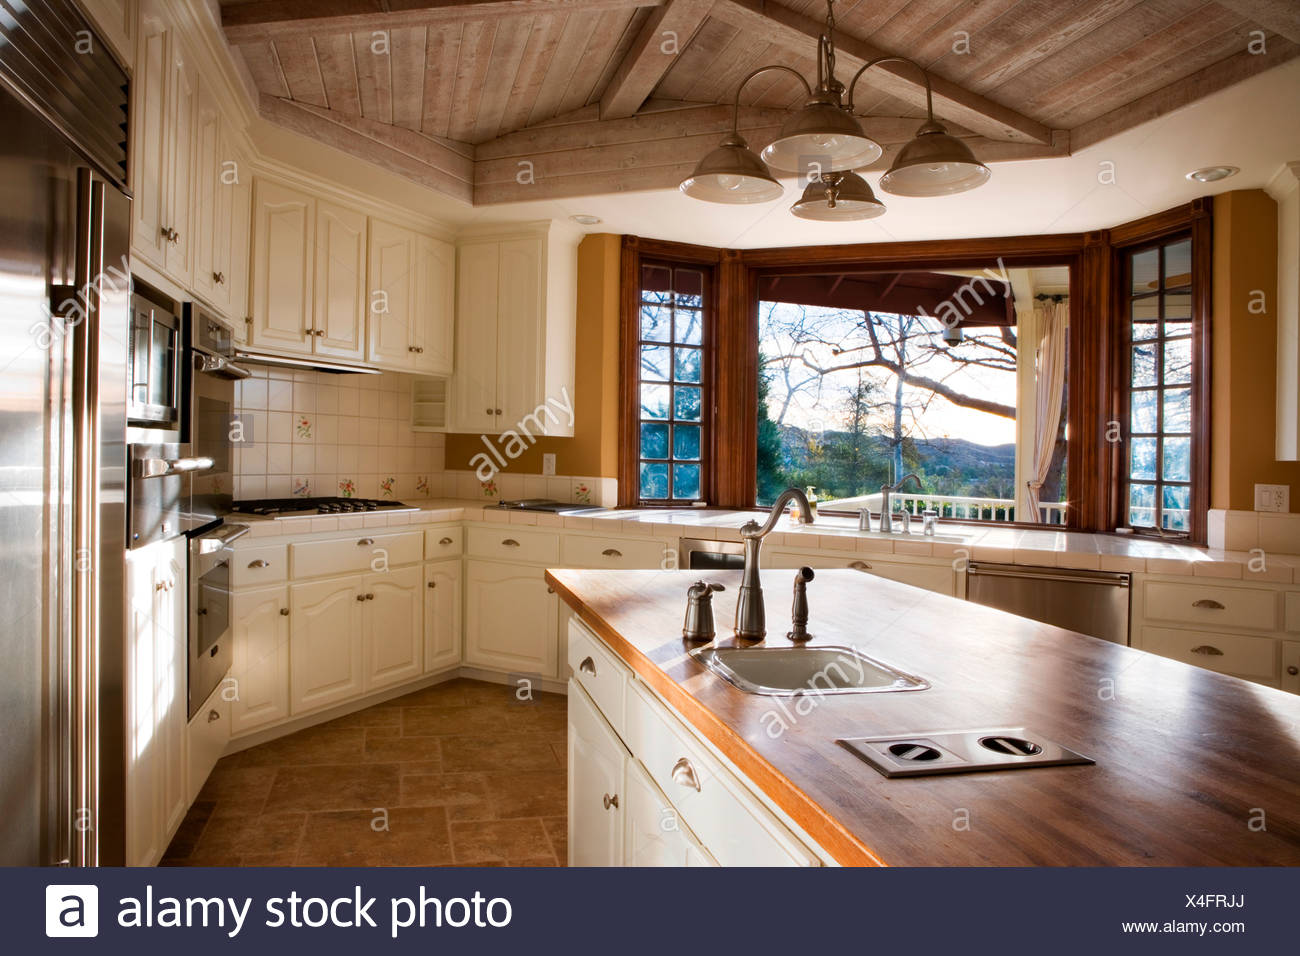 Large Country Style Kitchen Stock Photo: 278172346 - Alamy